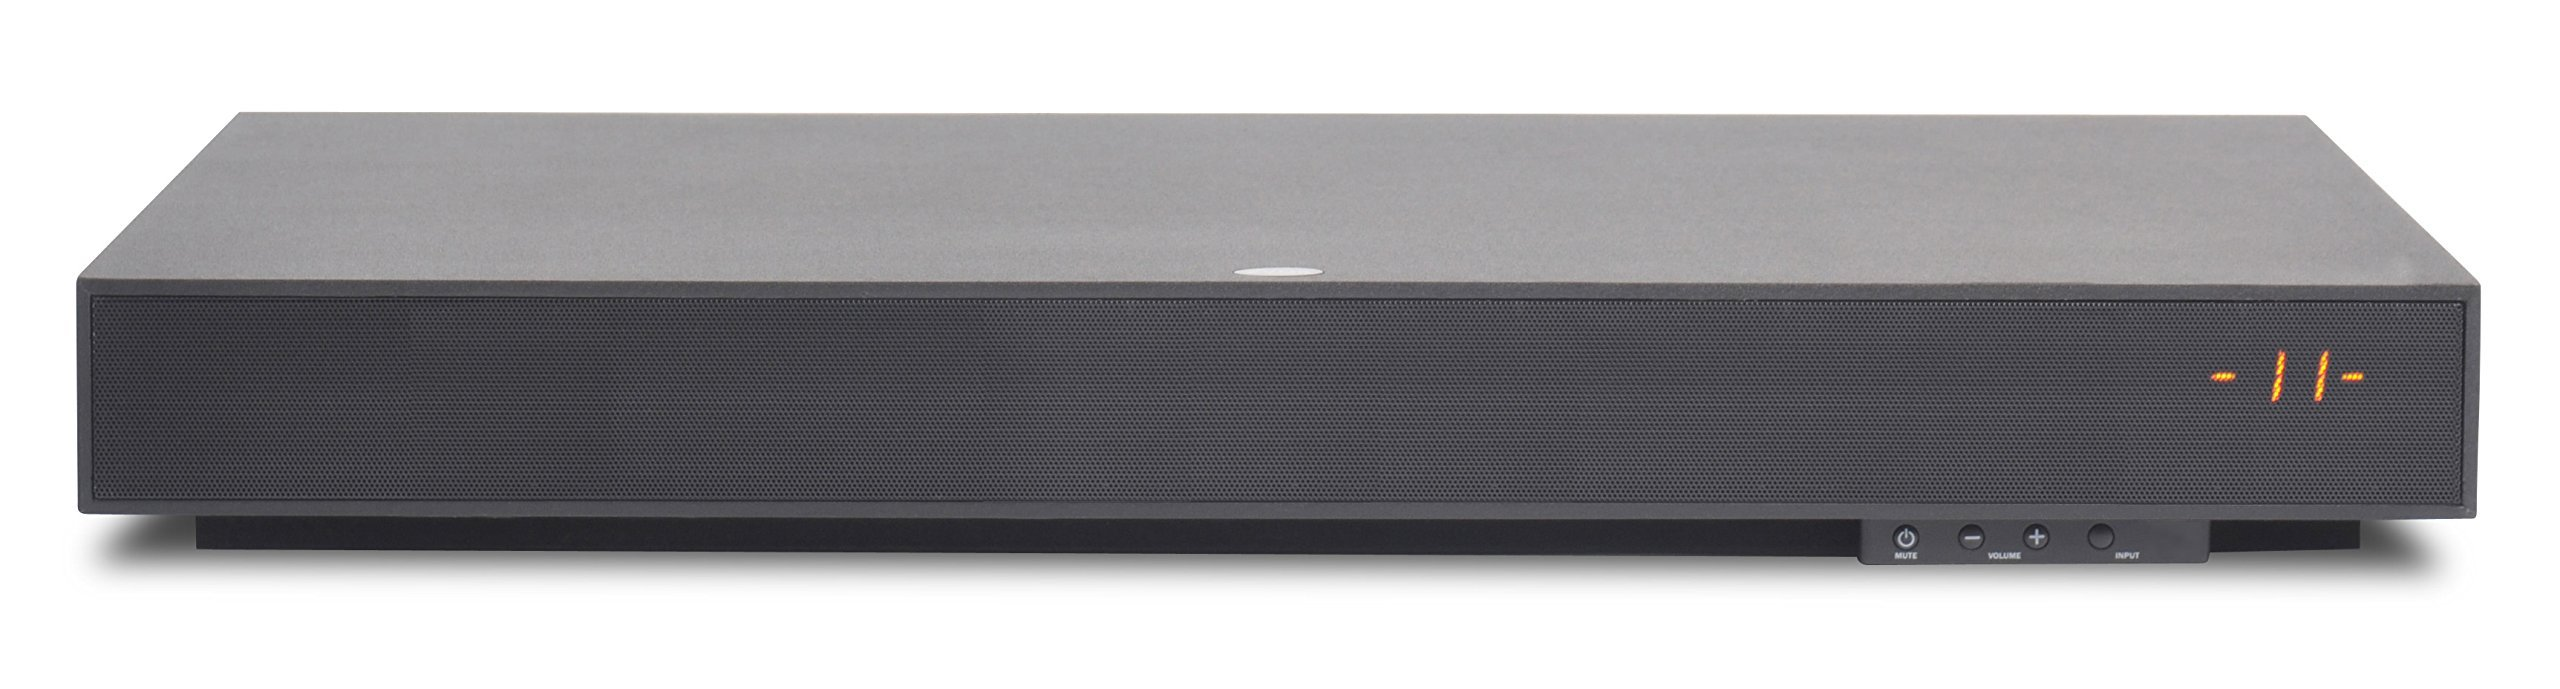 "ZVOX SoundBase 440 28"" Sound Bar TV Speaker With AccuVoice Hearing Aid Technology - 30-Day Home Trial,"